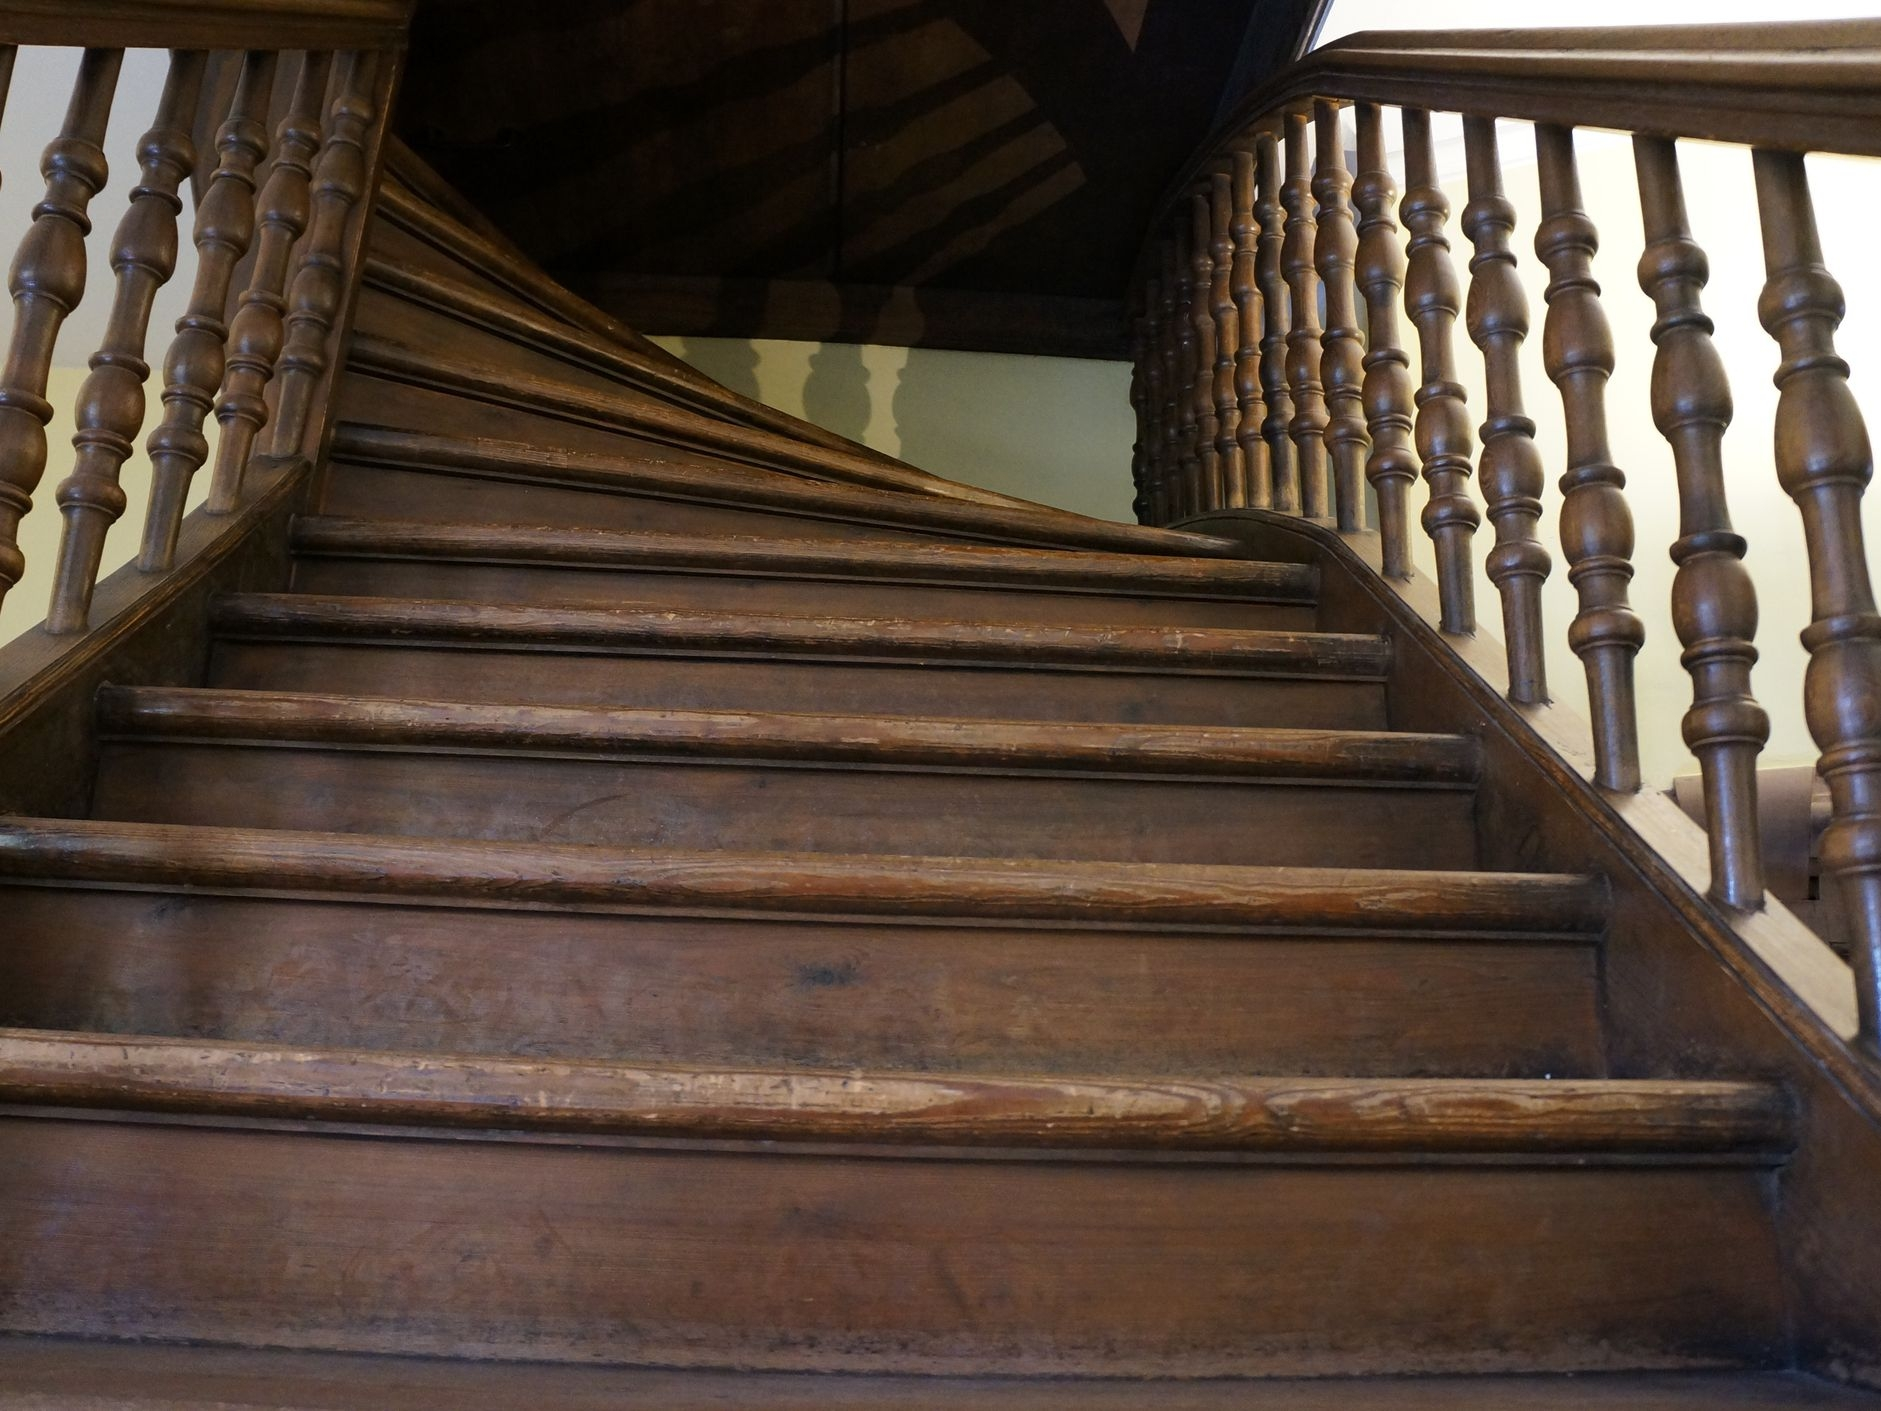 How To Fix Creaky Stairs   Best Wood For Indoor Stairs   Hardwood   Stair Parts   Stair Case   Glass   Red Oak